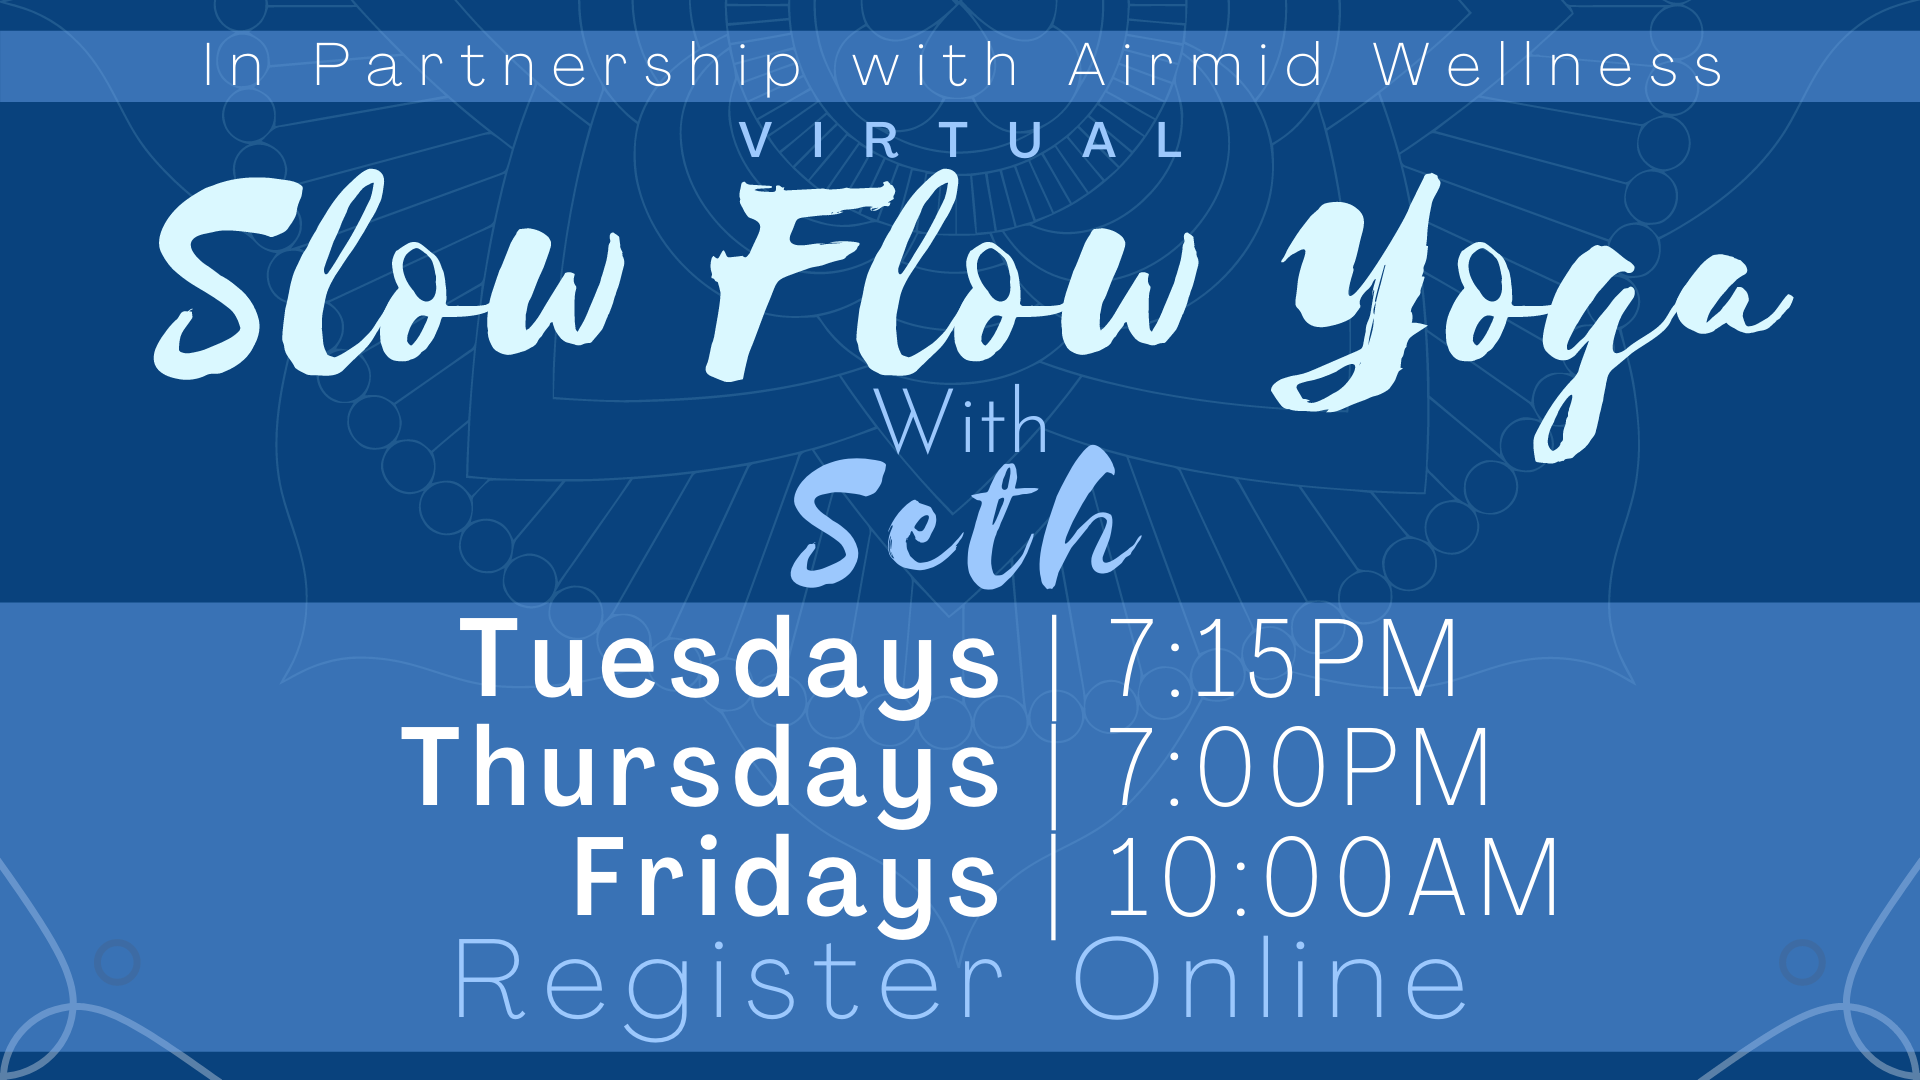 Slow Flow Intermediate Yoga with Seth